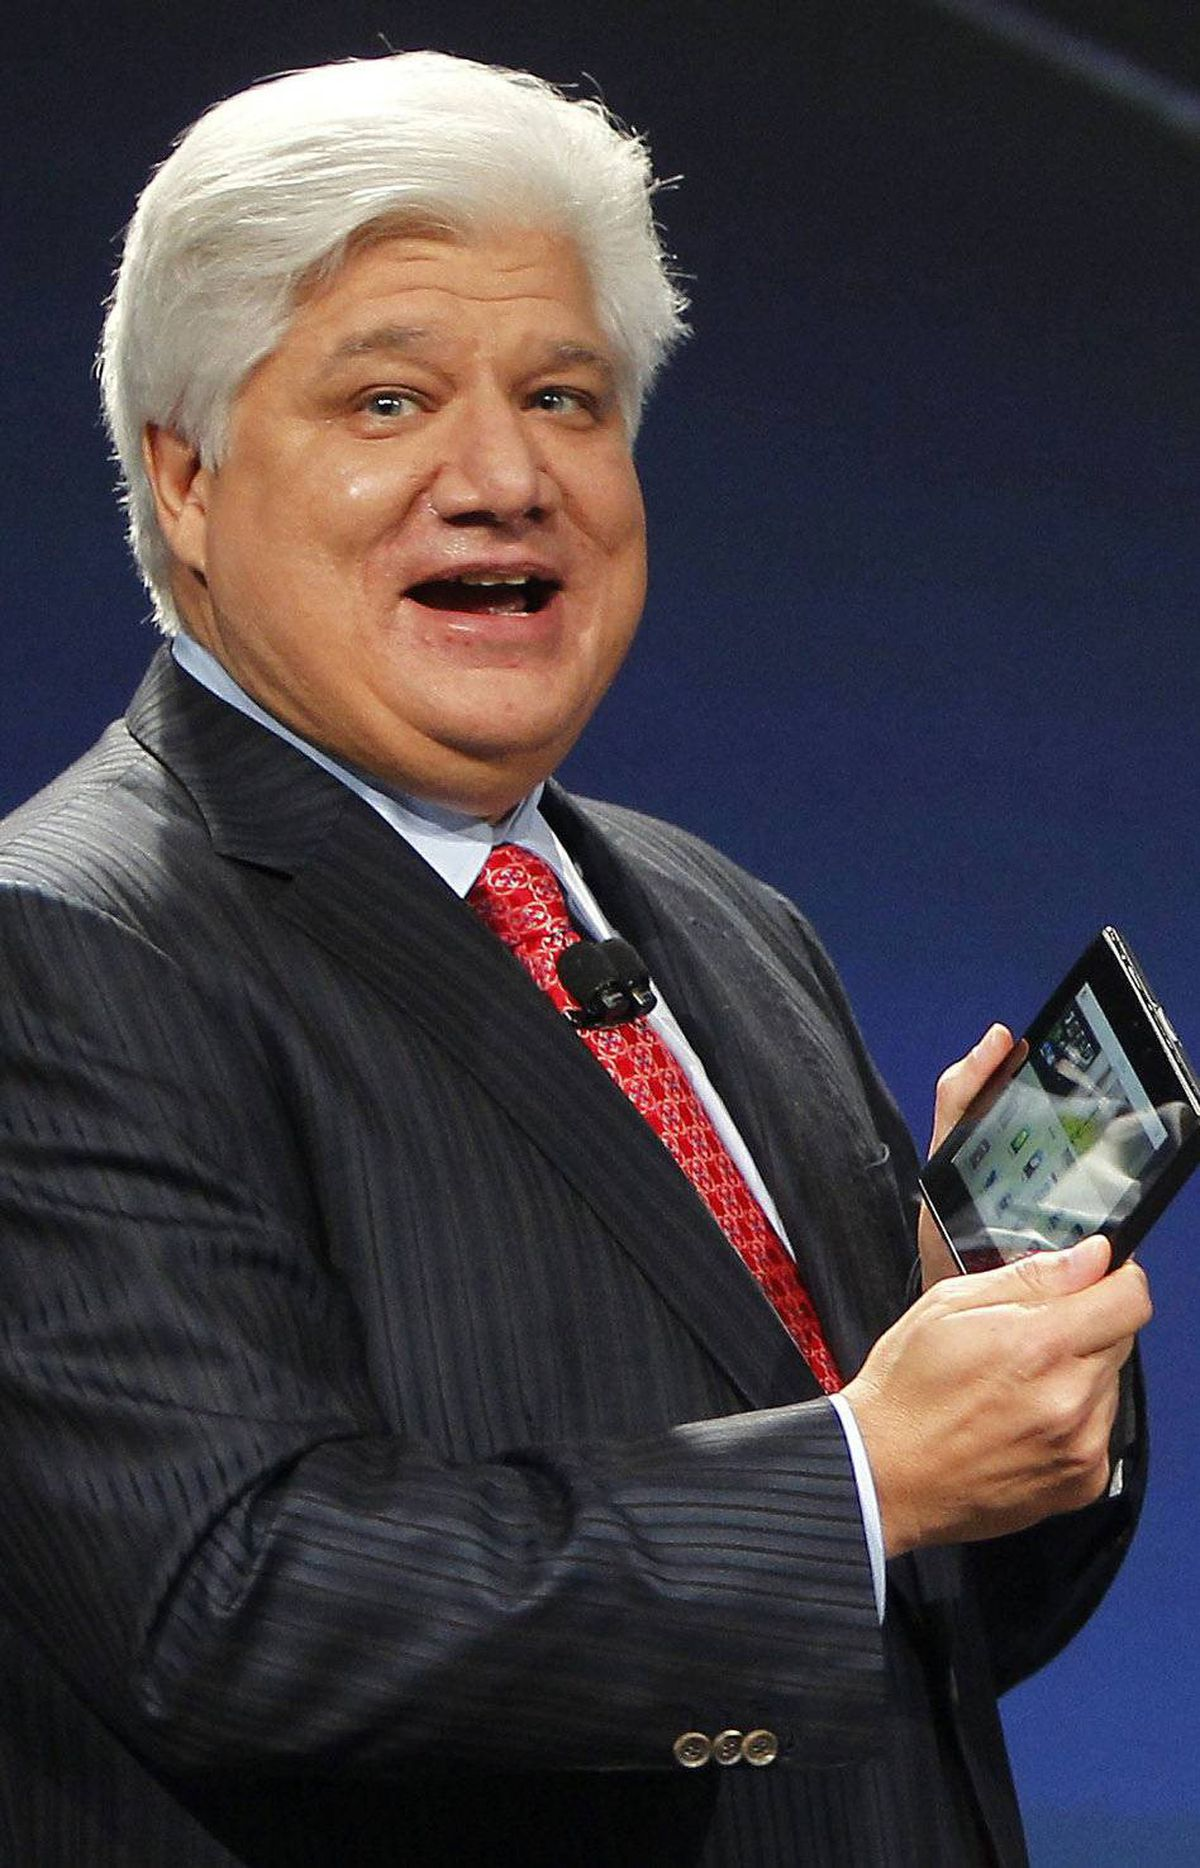 Mike Lazaridis, president and co-chief executive officer of Research in Motion, holds the new Blackberry PlayBook which is 9.7mm thin as he speaks at the RIM Blackberry developers conference in San Francisco, California September 27, 2010. REUTERS/Robert Galbraith (UNITED STATES - Tags: SCI TECH BUSINESS)